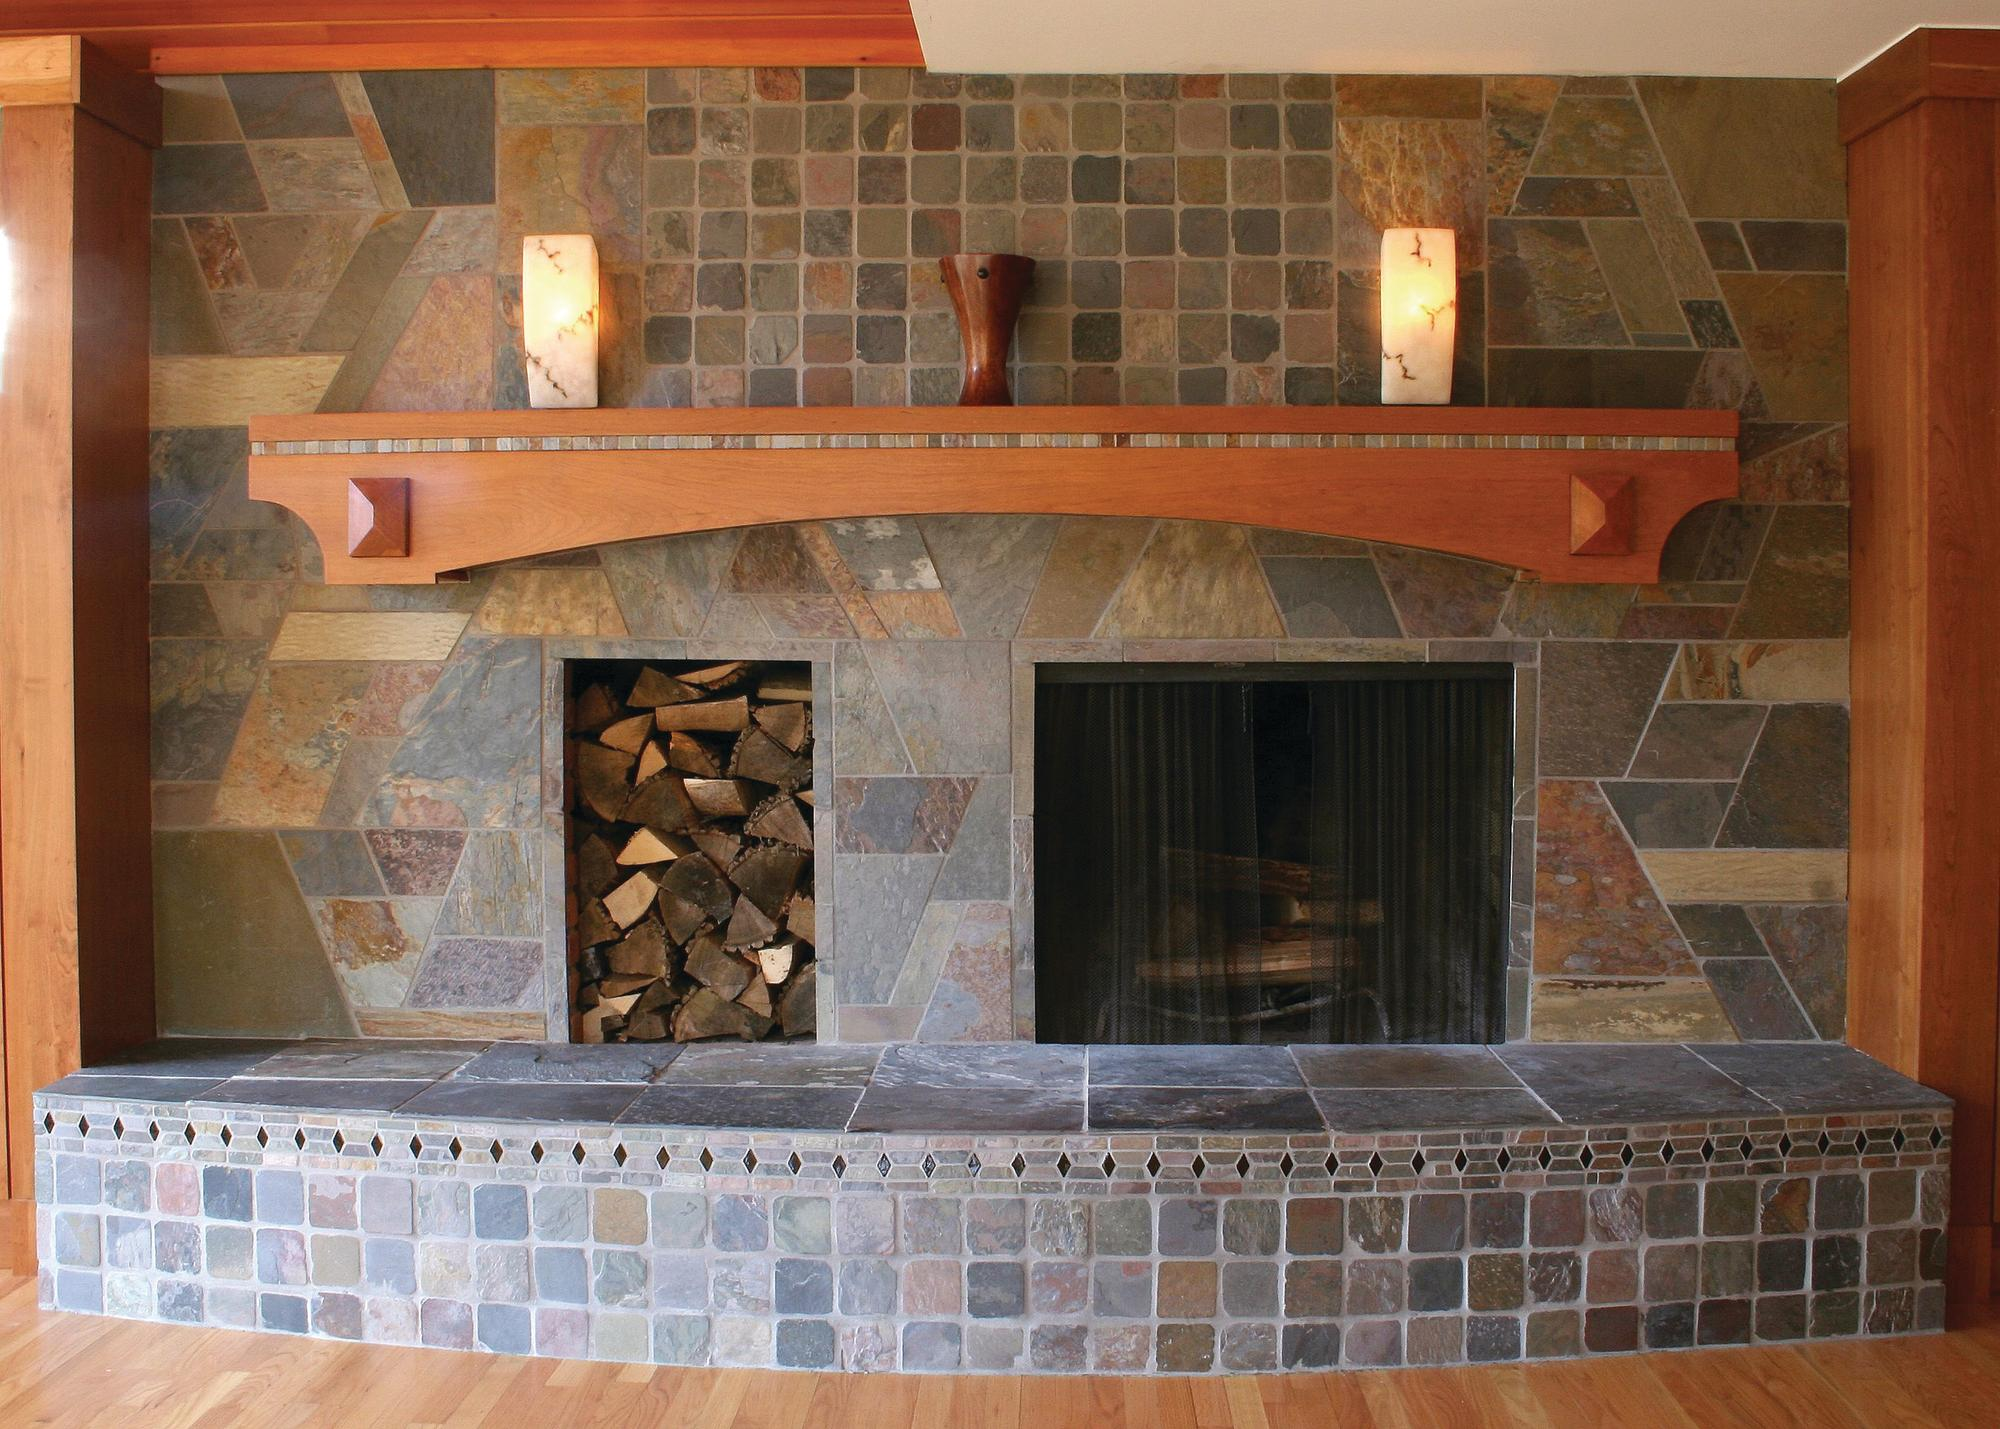 Designs Remodeling: Selling The Mantel: Fireplace Mantel As Striking Focal